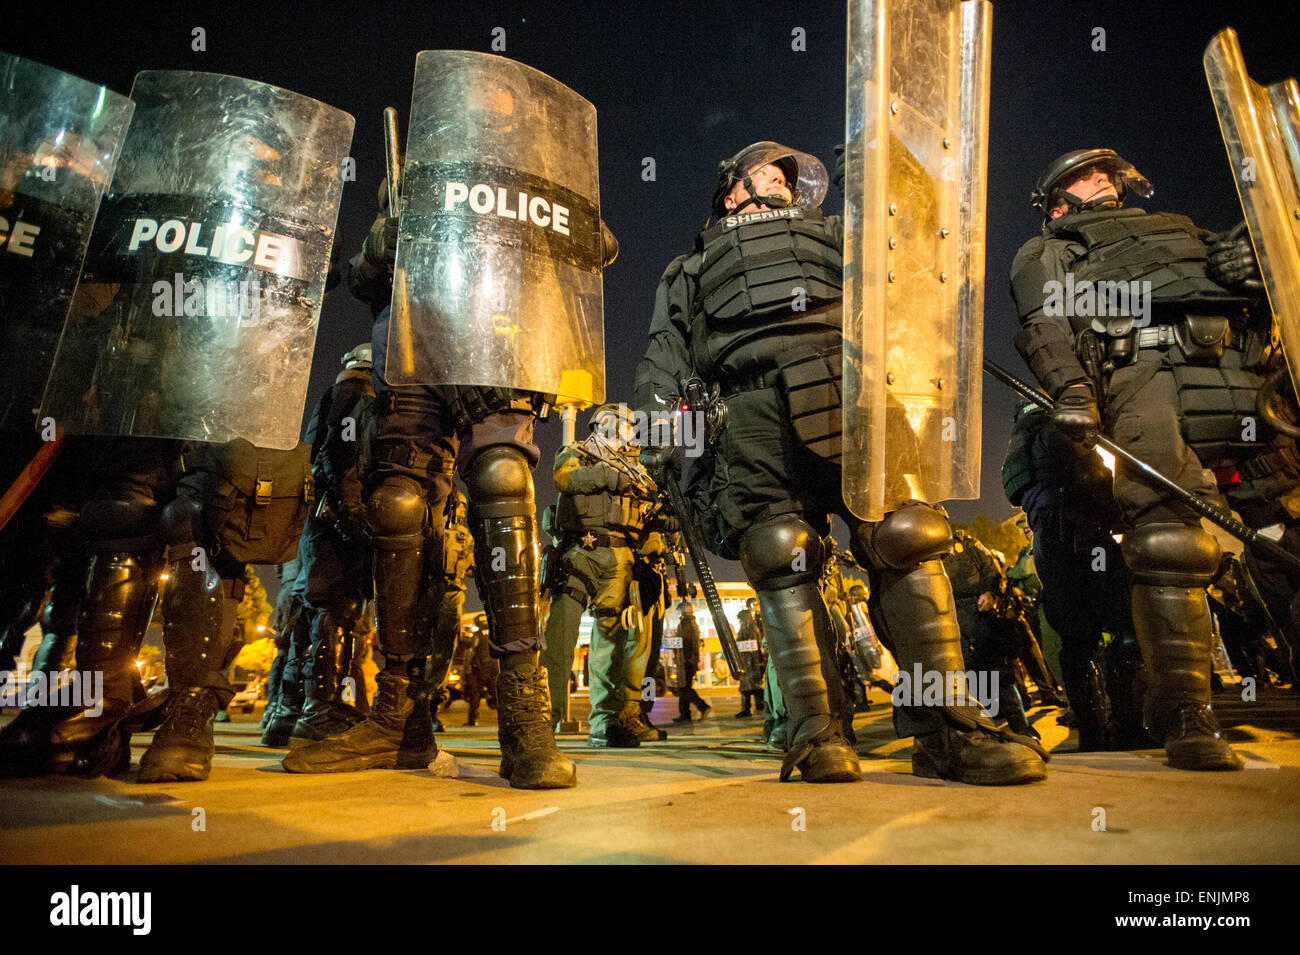 BALTIMORE, MARYLAND - Riot police controlling crowds  at Penn and North Ave, in west Baltimore after the death of - Stock Image